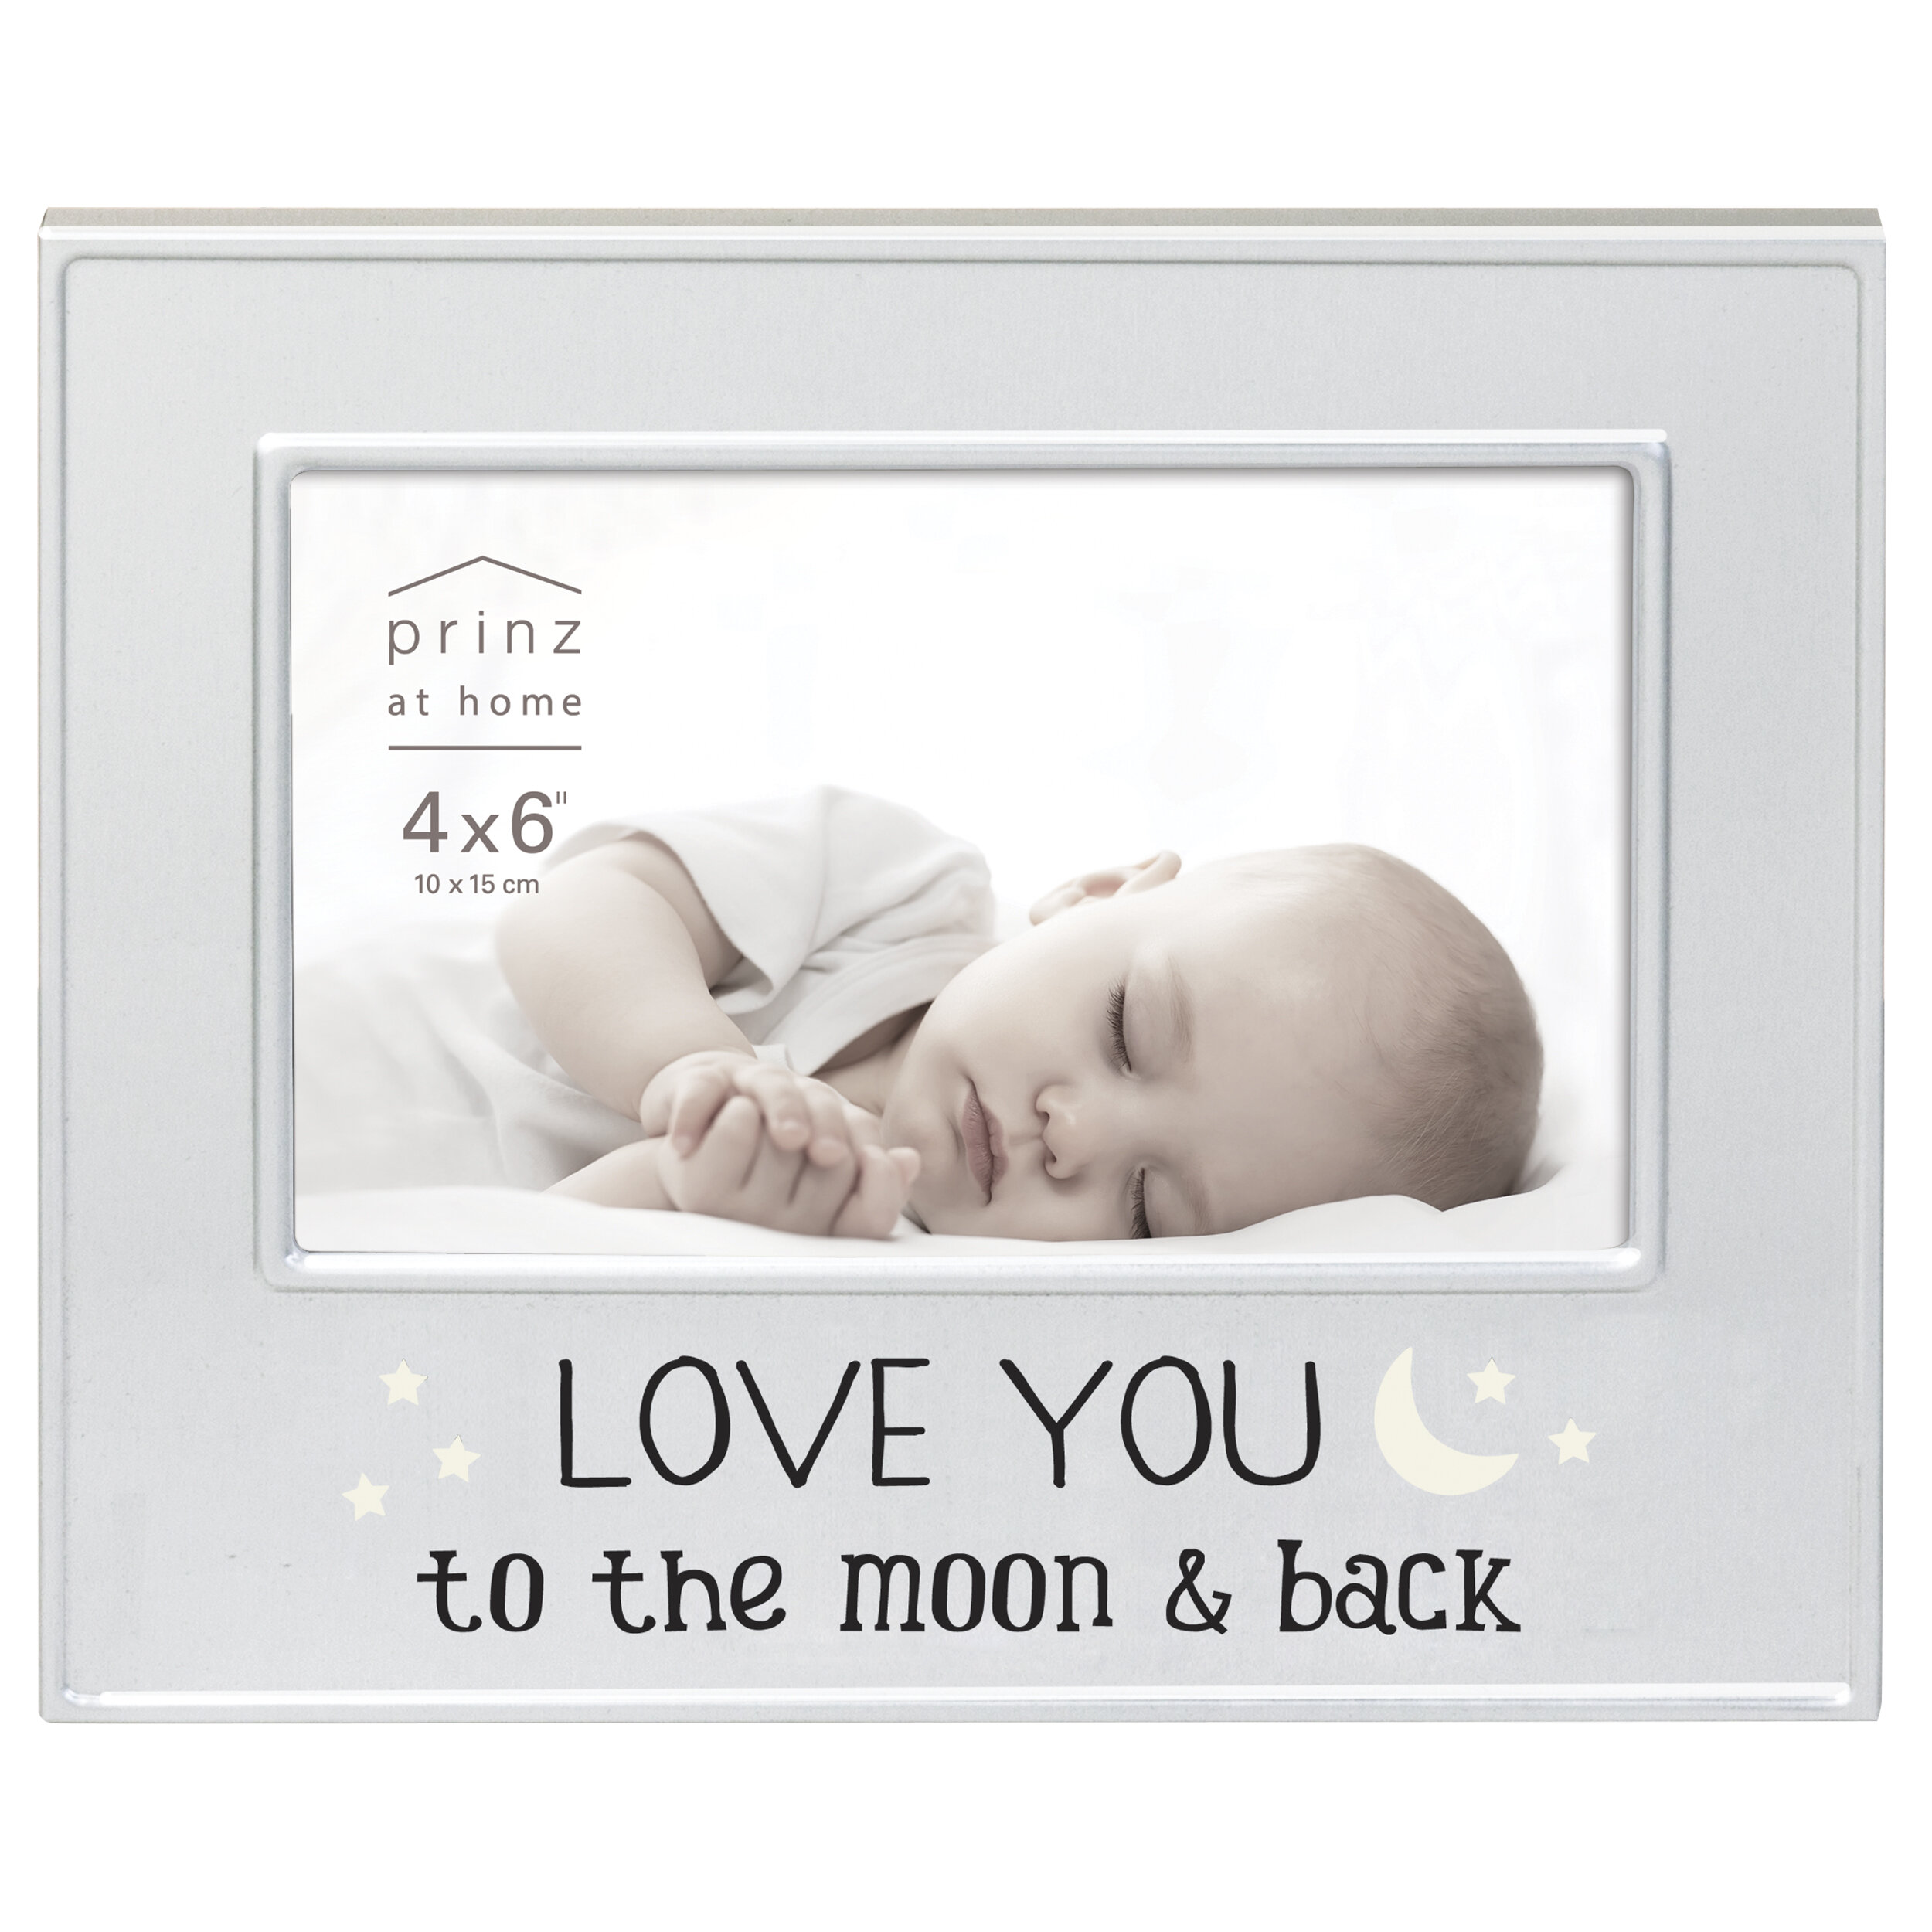 Prinz Love You To The Moon And Back Metal Picture Frame Wayfair